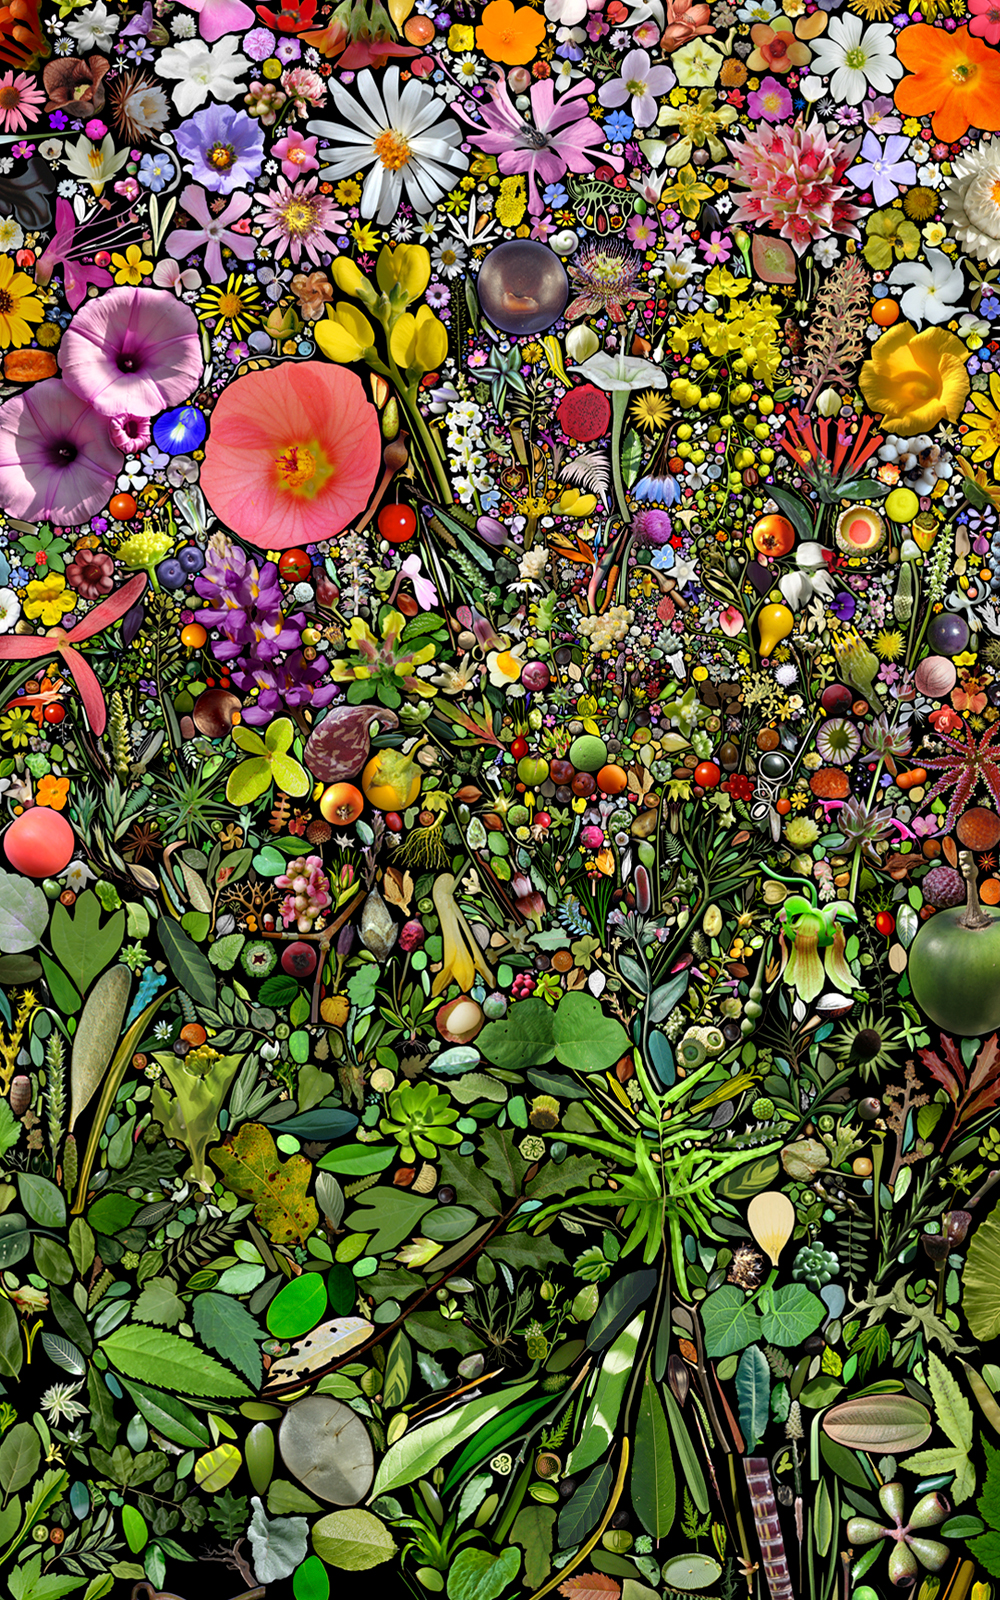 Case Simmons, Simmons & Burke, U.S. Plant Collection Palette, Still Lives and Common Names, Digital Collage, Digital Art, Photoshop Collage, Contemporary Collage, Case Simmons Art, Collage Fine Art, Plant Art, Digital Flower Art, Collection Art, Archive Art, Kohn Gallery